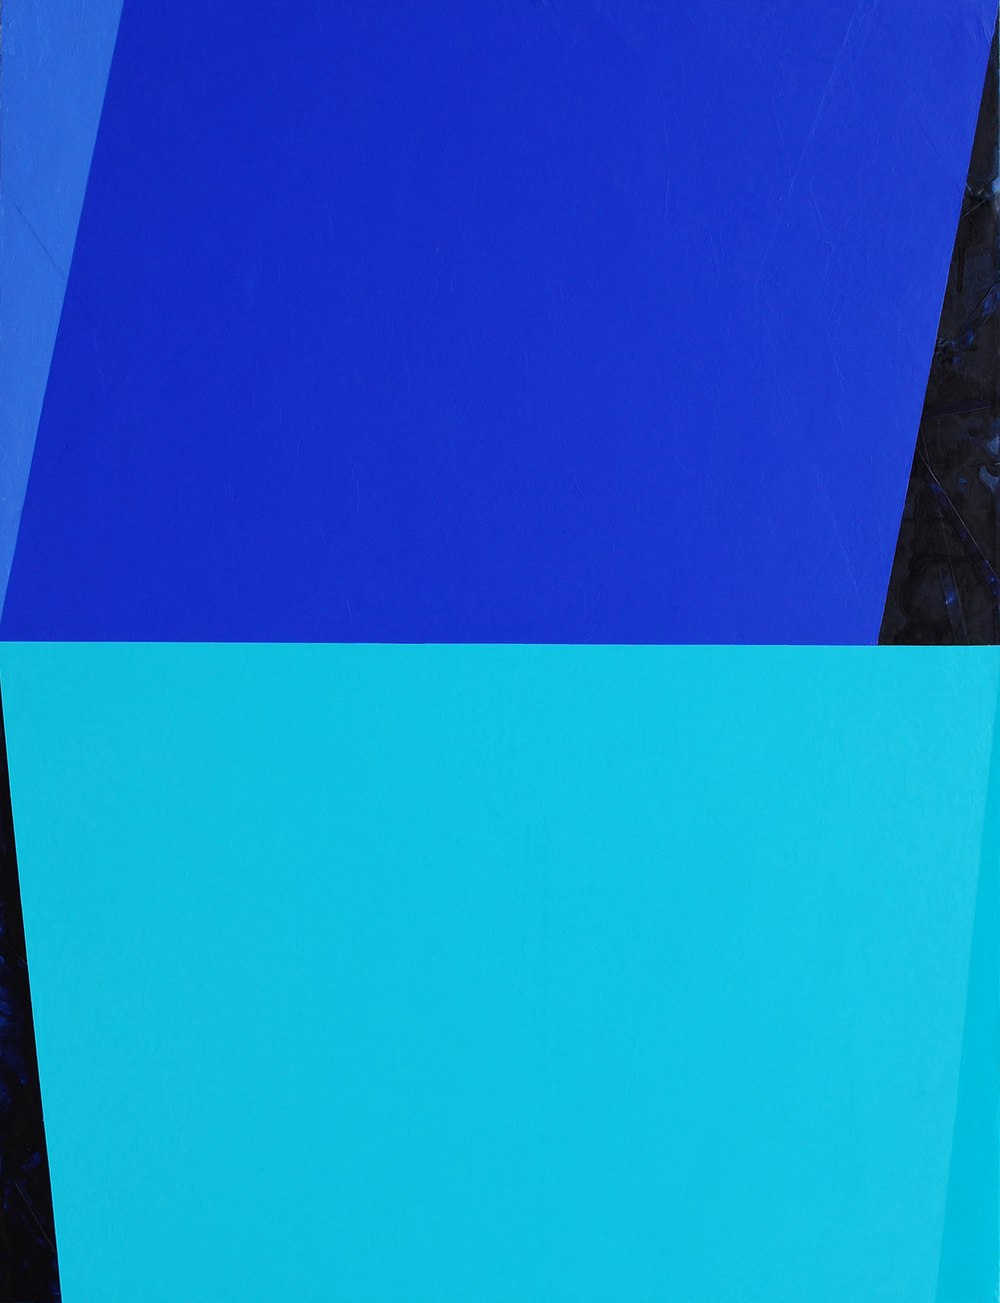 Shadow Boxer (restivemeasures-M.12.5), 2015, acrylic on canvas, 48 x 38 inches